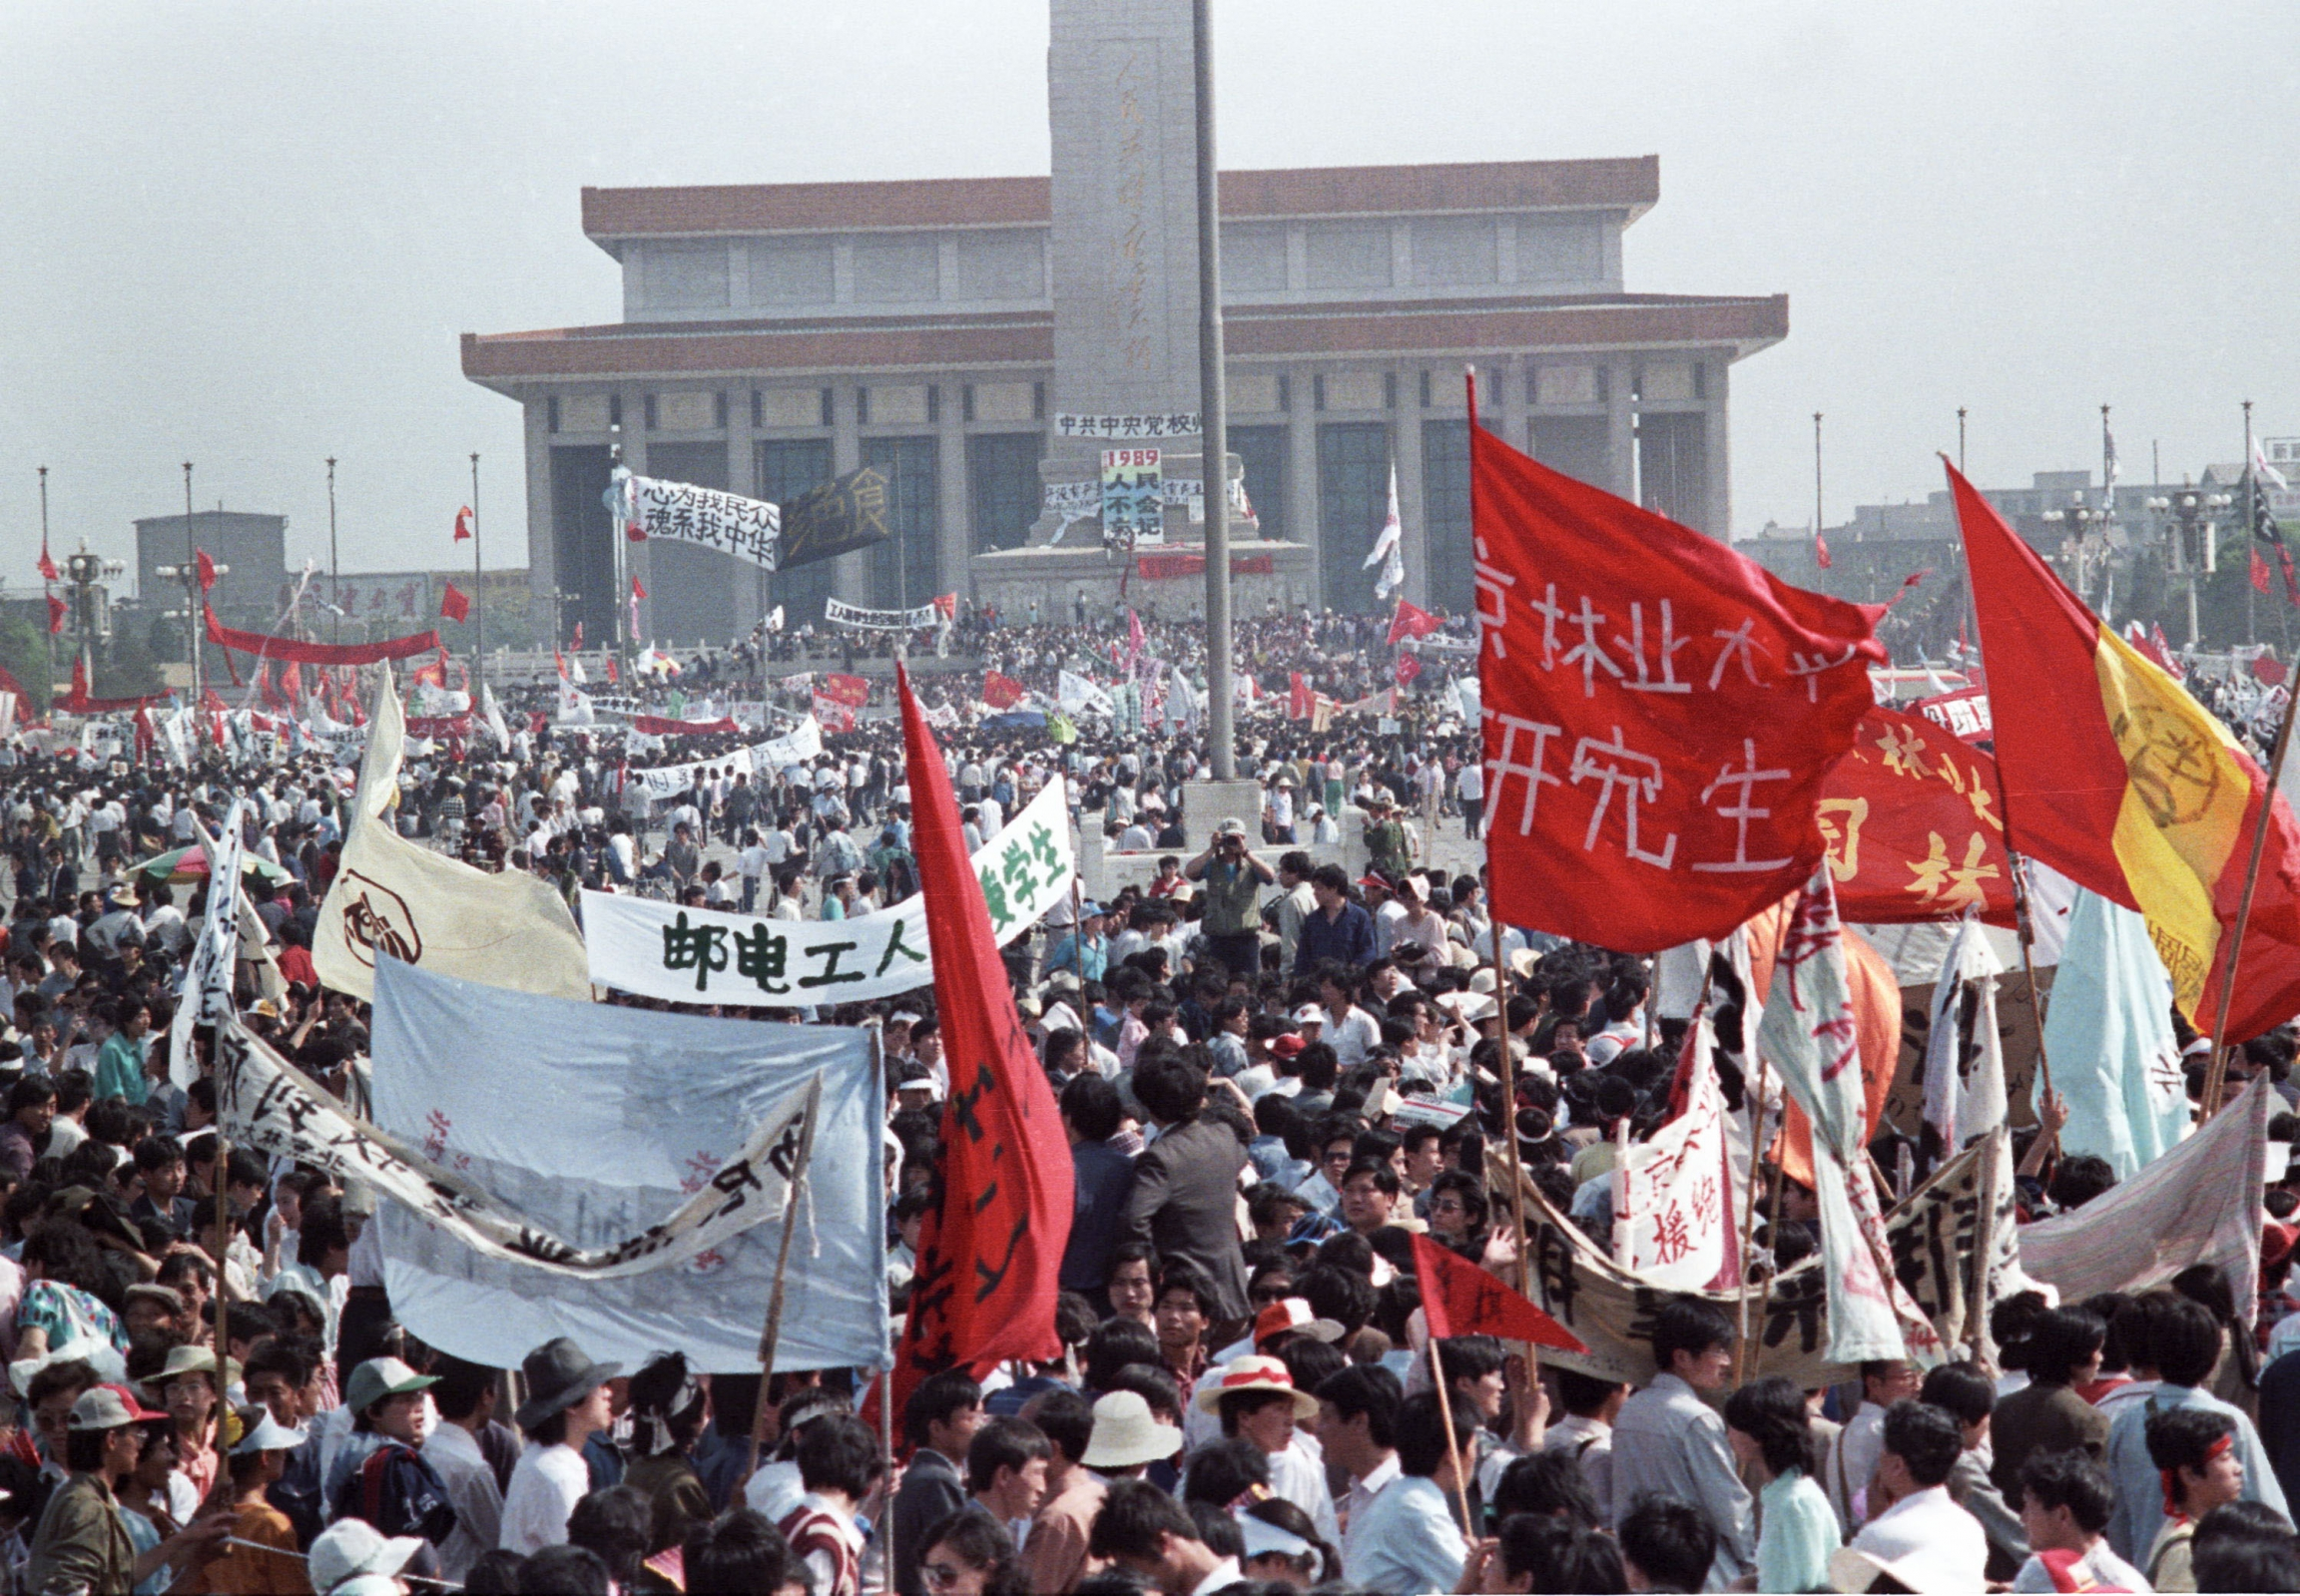 Crowds protest in Tiananmen Square carrying banners written in Chinese.